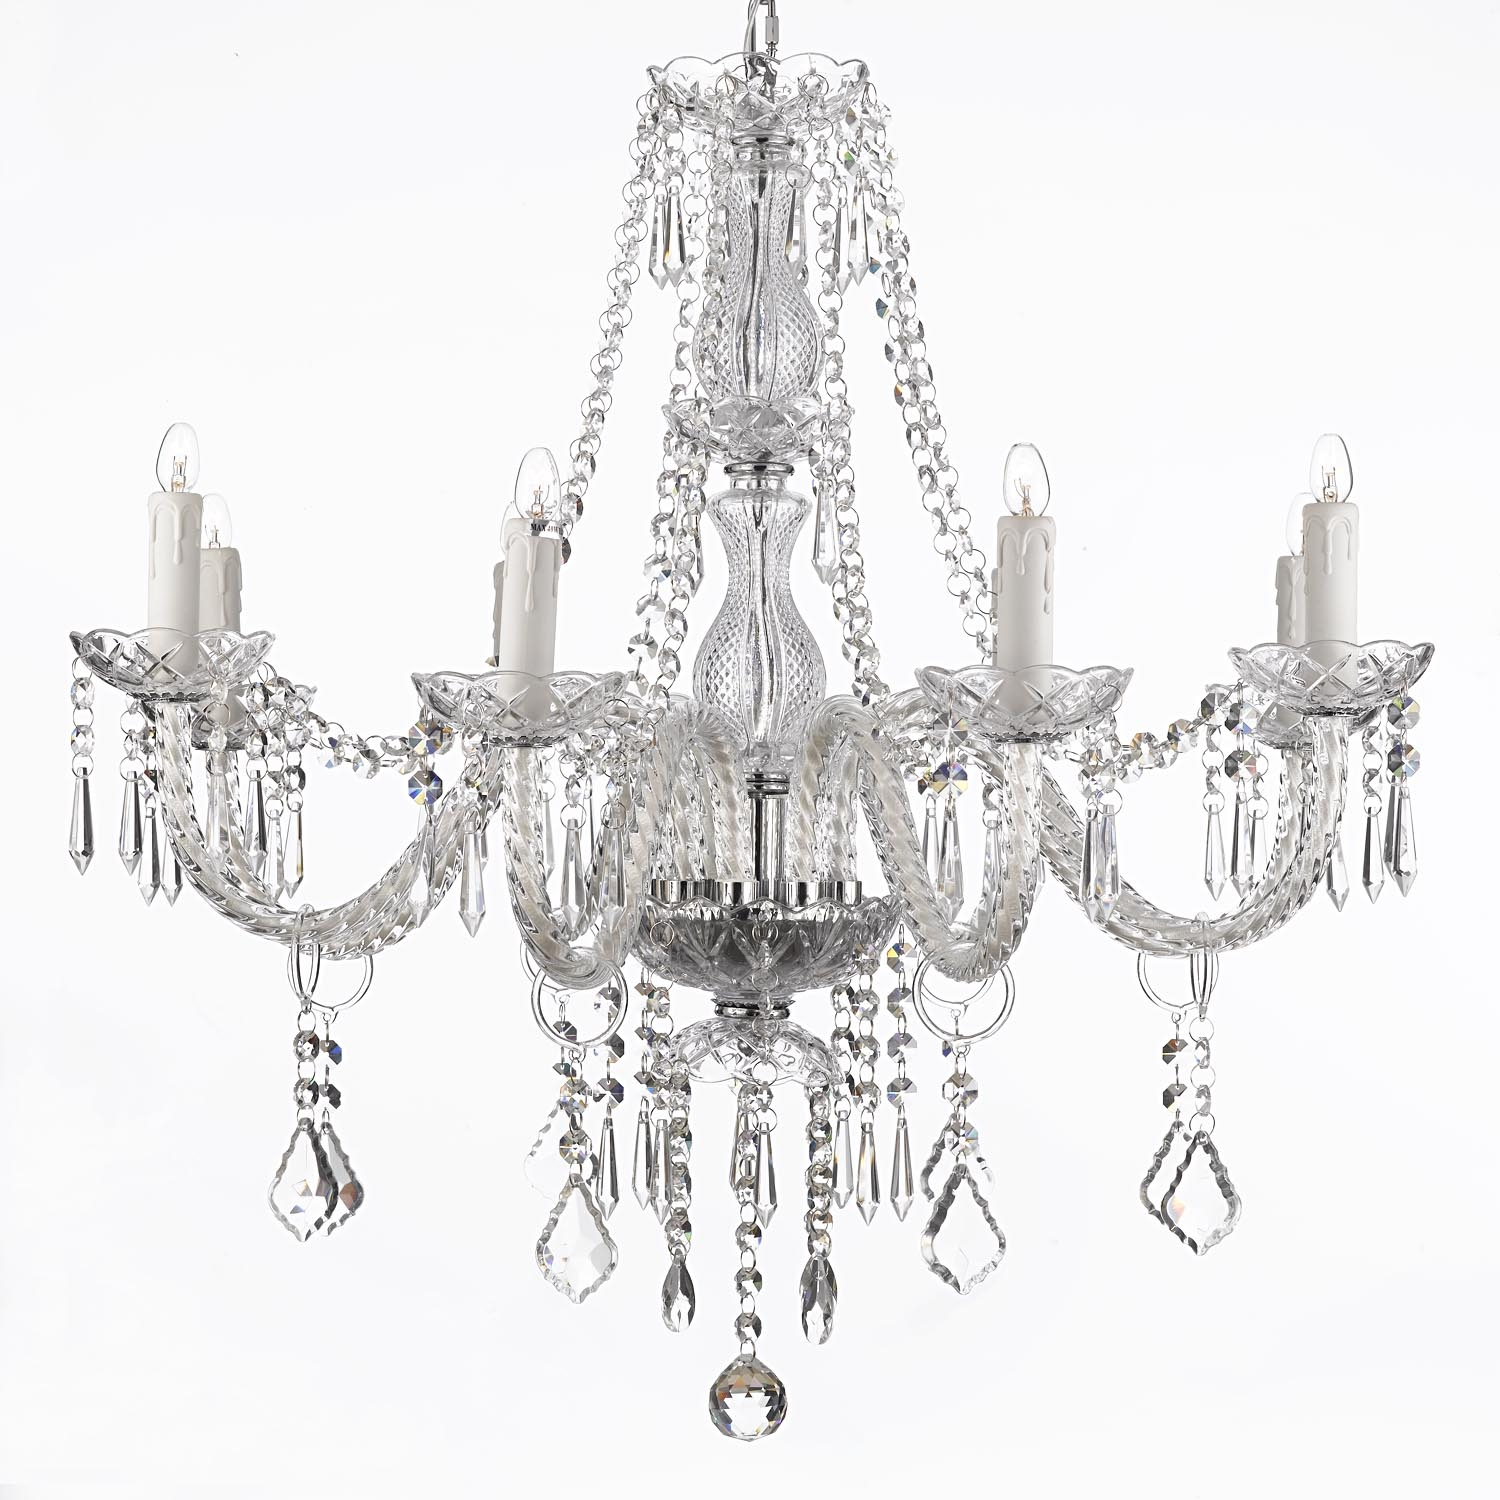 Popular Photo of Silver Chandeliers